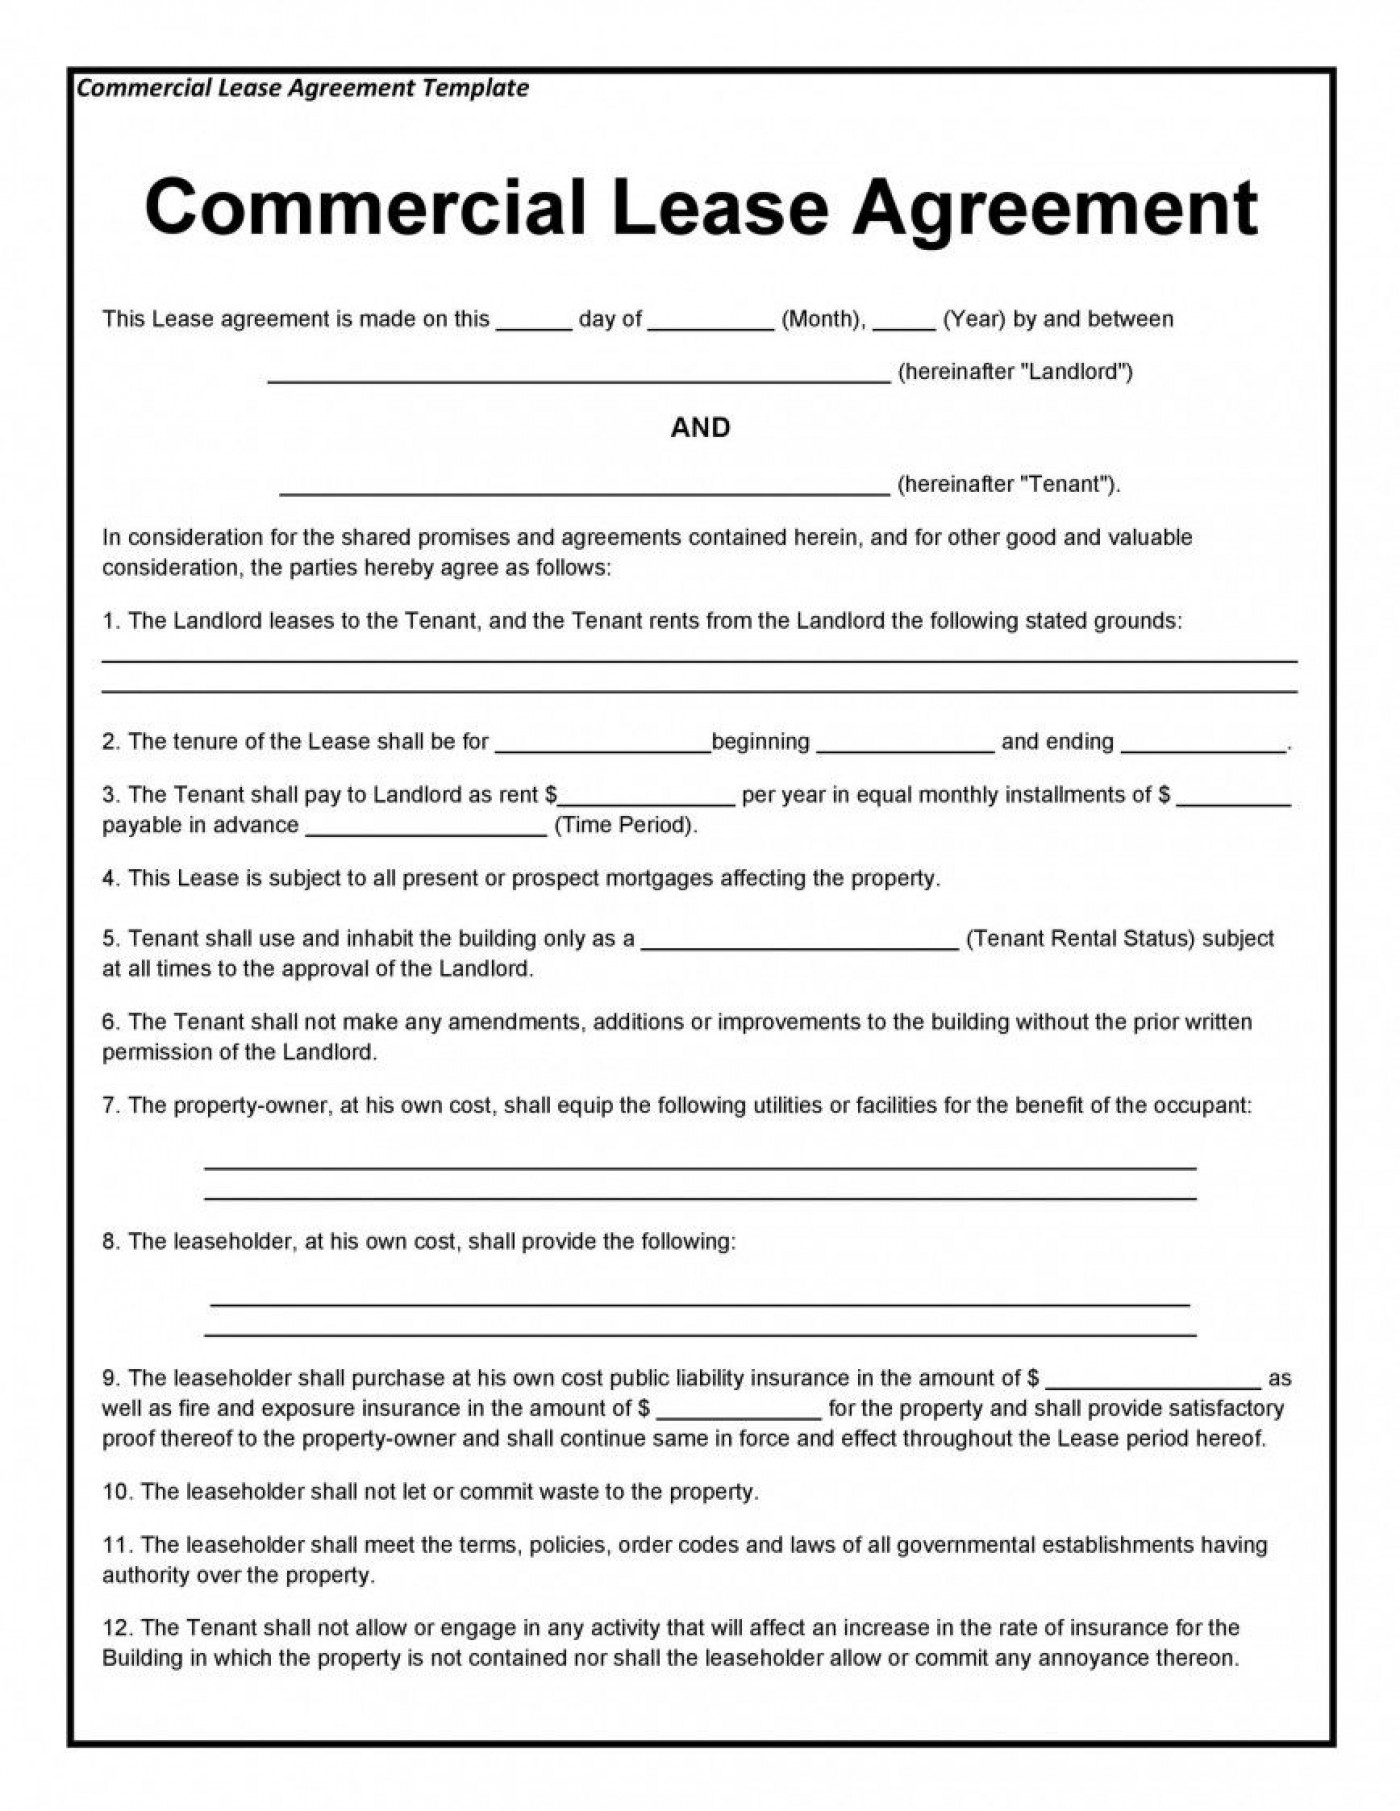 000 Unique Simple Lease Agreement Template High Resolution  Tenancy Free Download Rent Format In Word India Rental1400